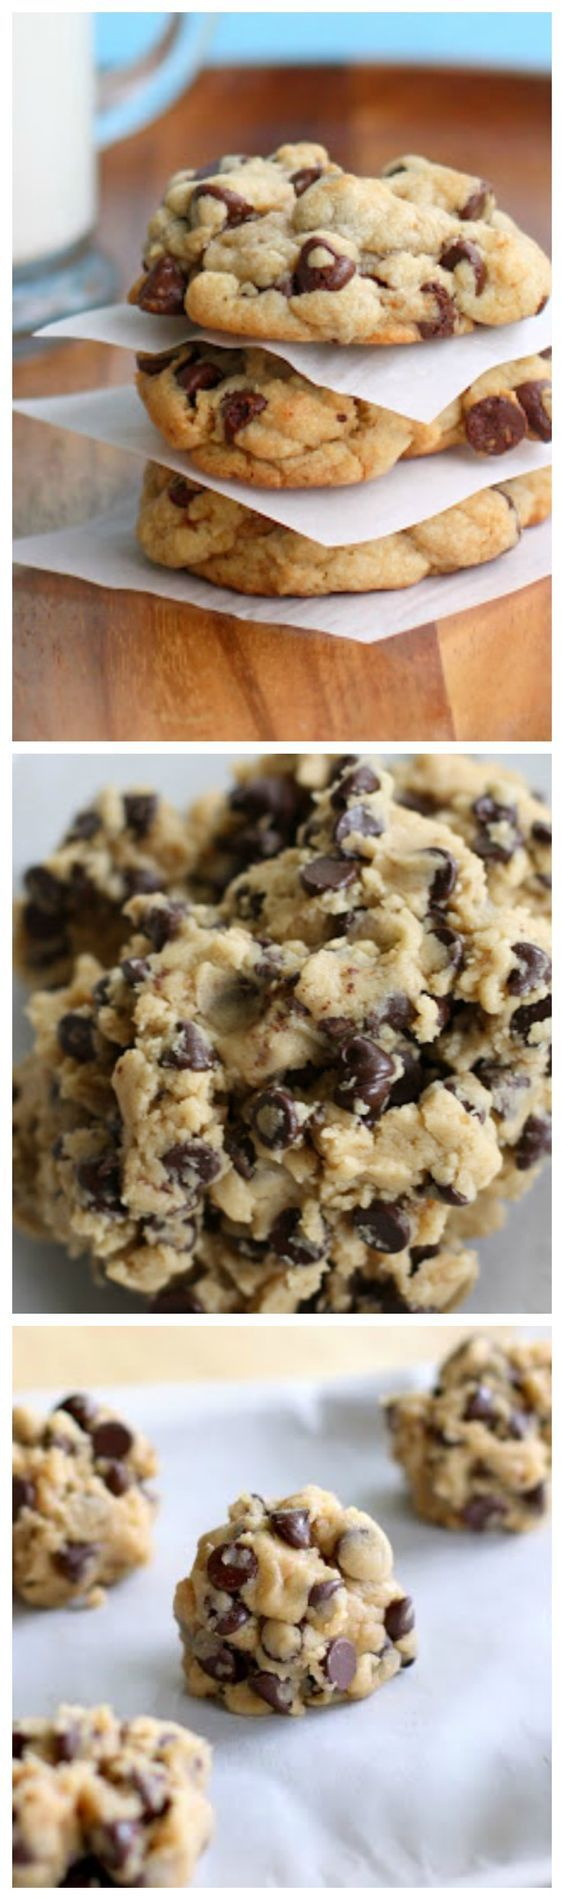 The Perfect Chocolate Chip Cookie - thick, chewy, and full of chocolate. the-girl-who-ate-everything.com